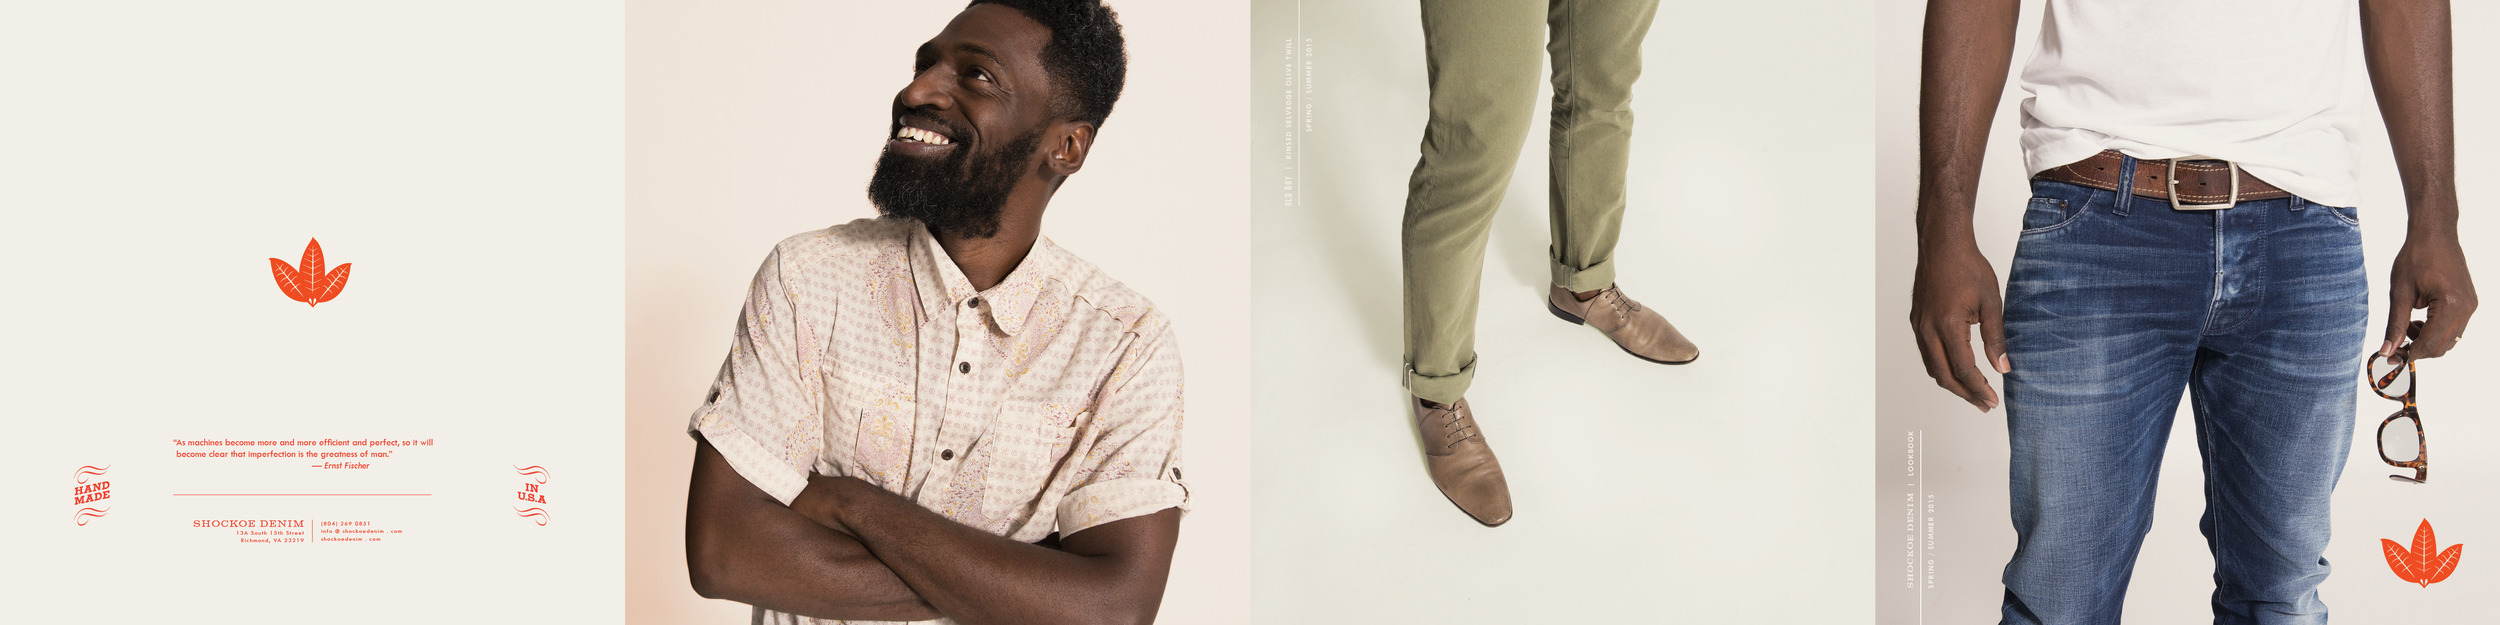 Shockoe Denim Lookbook 2015, showcasing amazing new washes and lines. Cover is far right. Backcover far left.